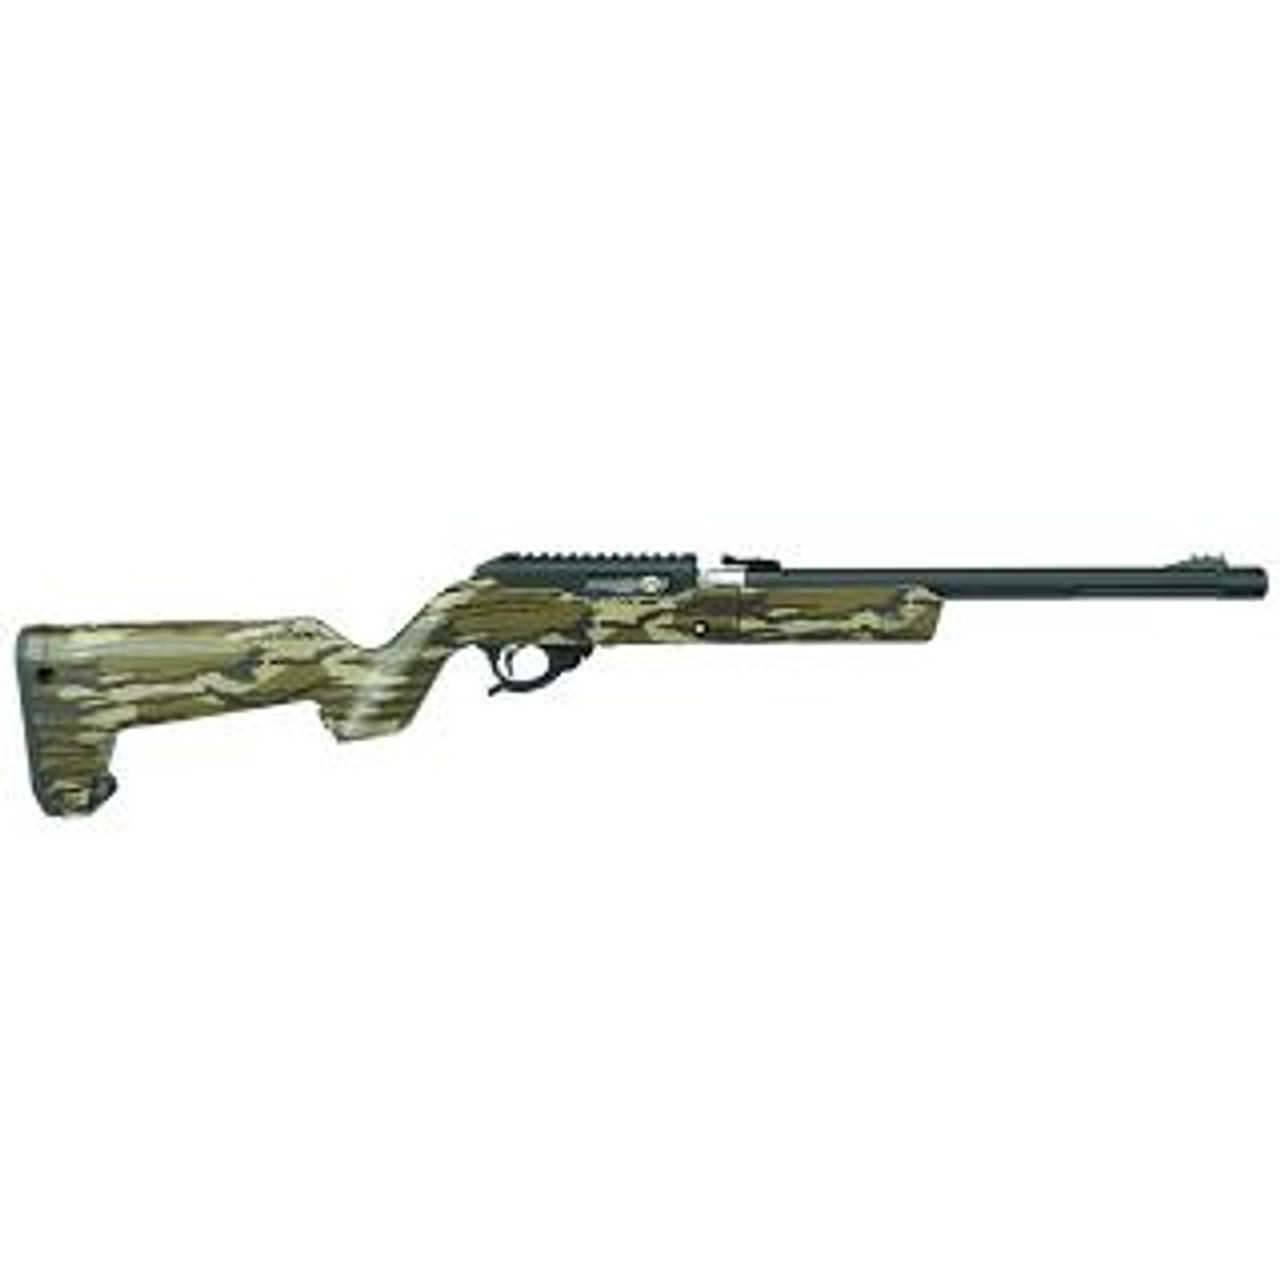 Tactical Solutions X-RING Semi-Auto Take Down Rifle CALIFORNIA LEGAL - .22LR - Mossy Oak Bottomland